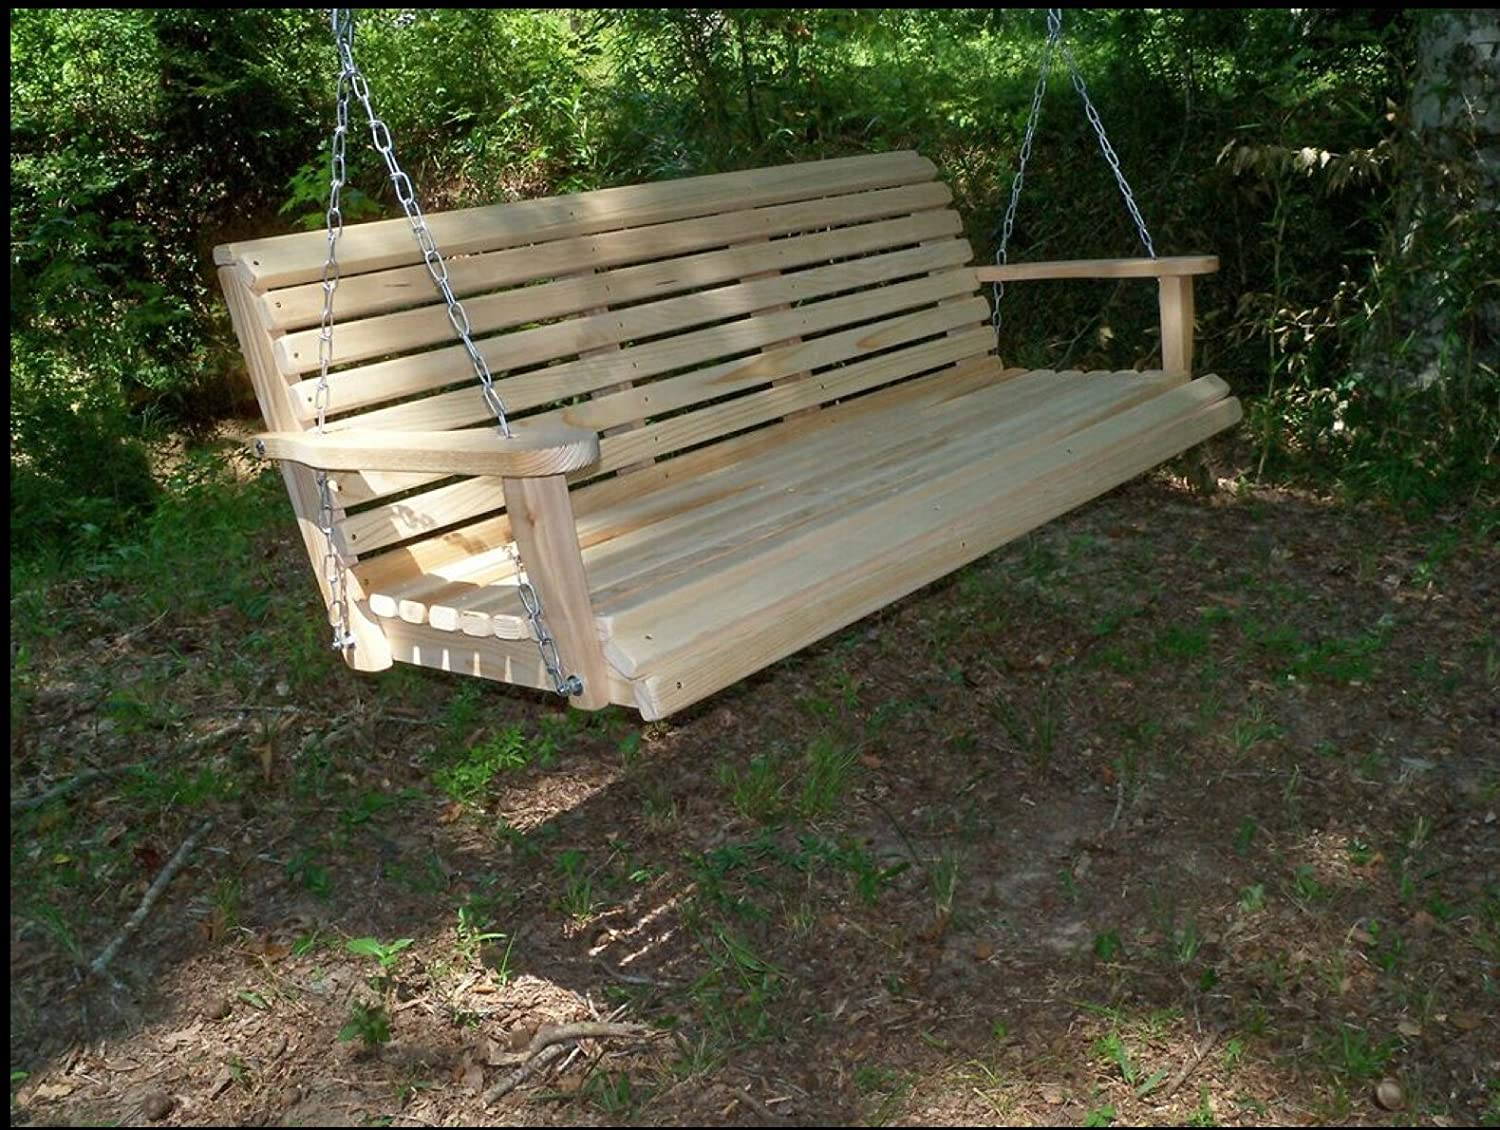 5 Five Feet Ft Made in the USA Rot Resistant Cypress Lumber Roll Back Porch Swing with Swing-mate Comfort Springs